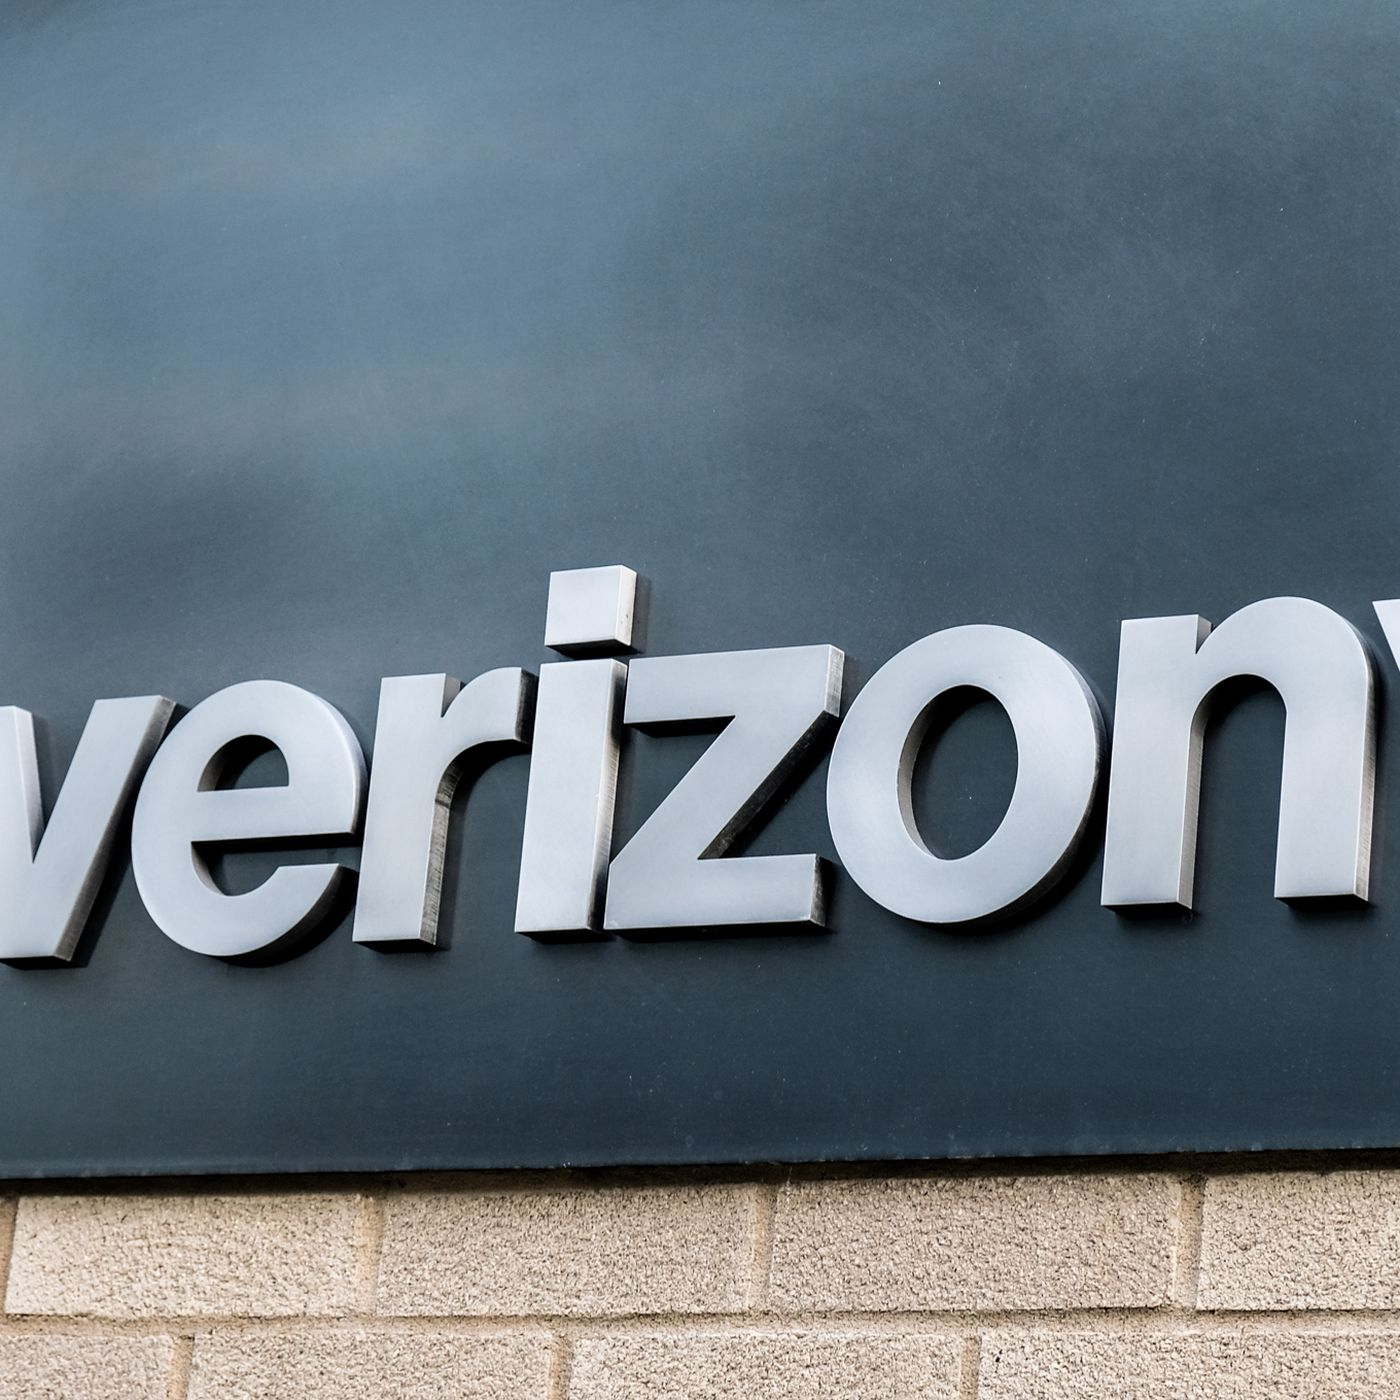 Verizon S New Rewards Program Lets It Track Your Browsing History The Verge